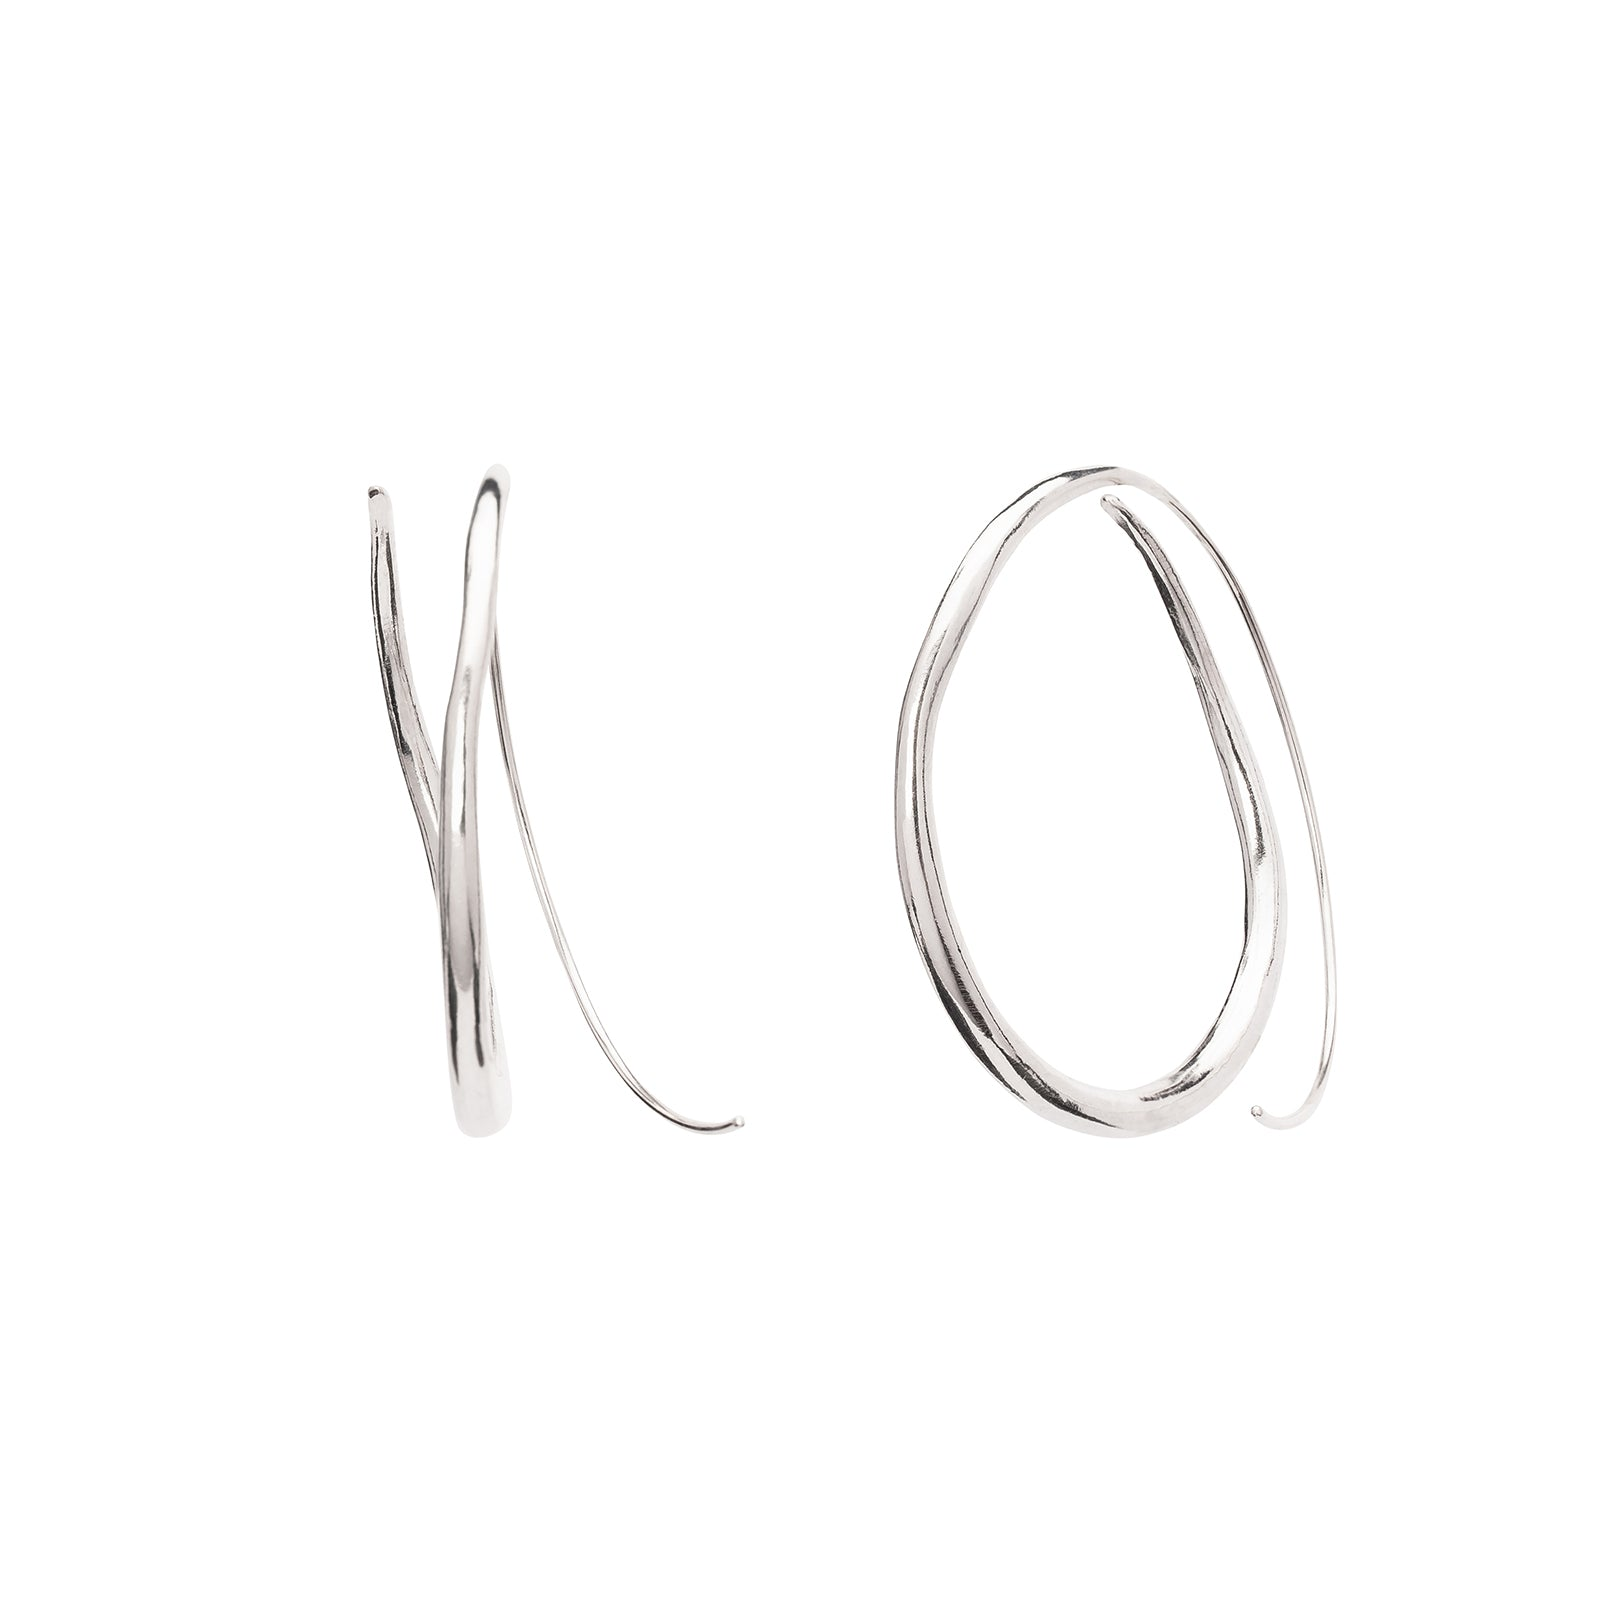 Ariana Boussard-Reifel Koko Earrings - Silver - Earrings - Broken English Jewelry